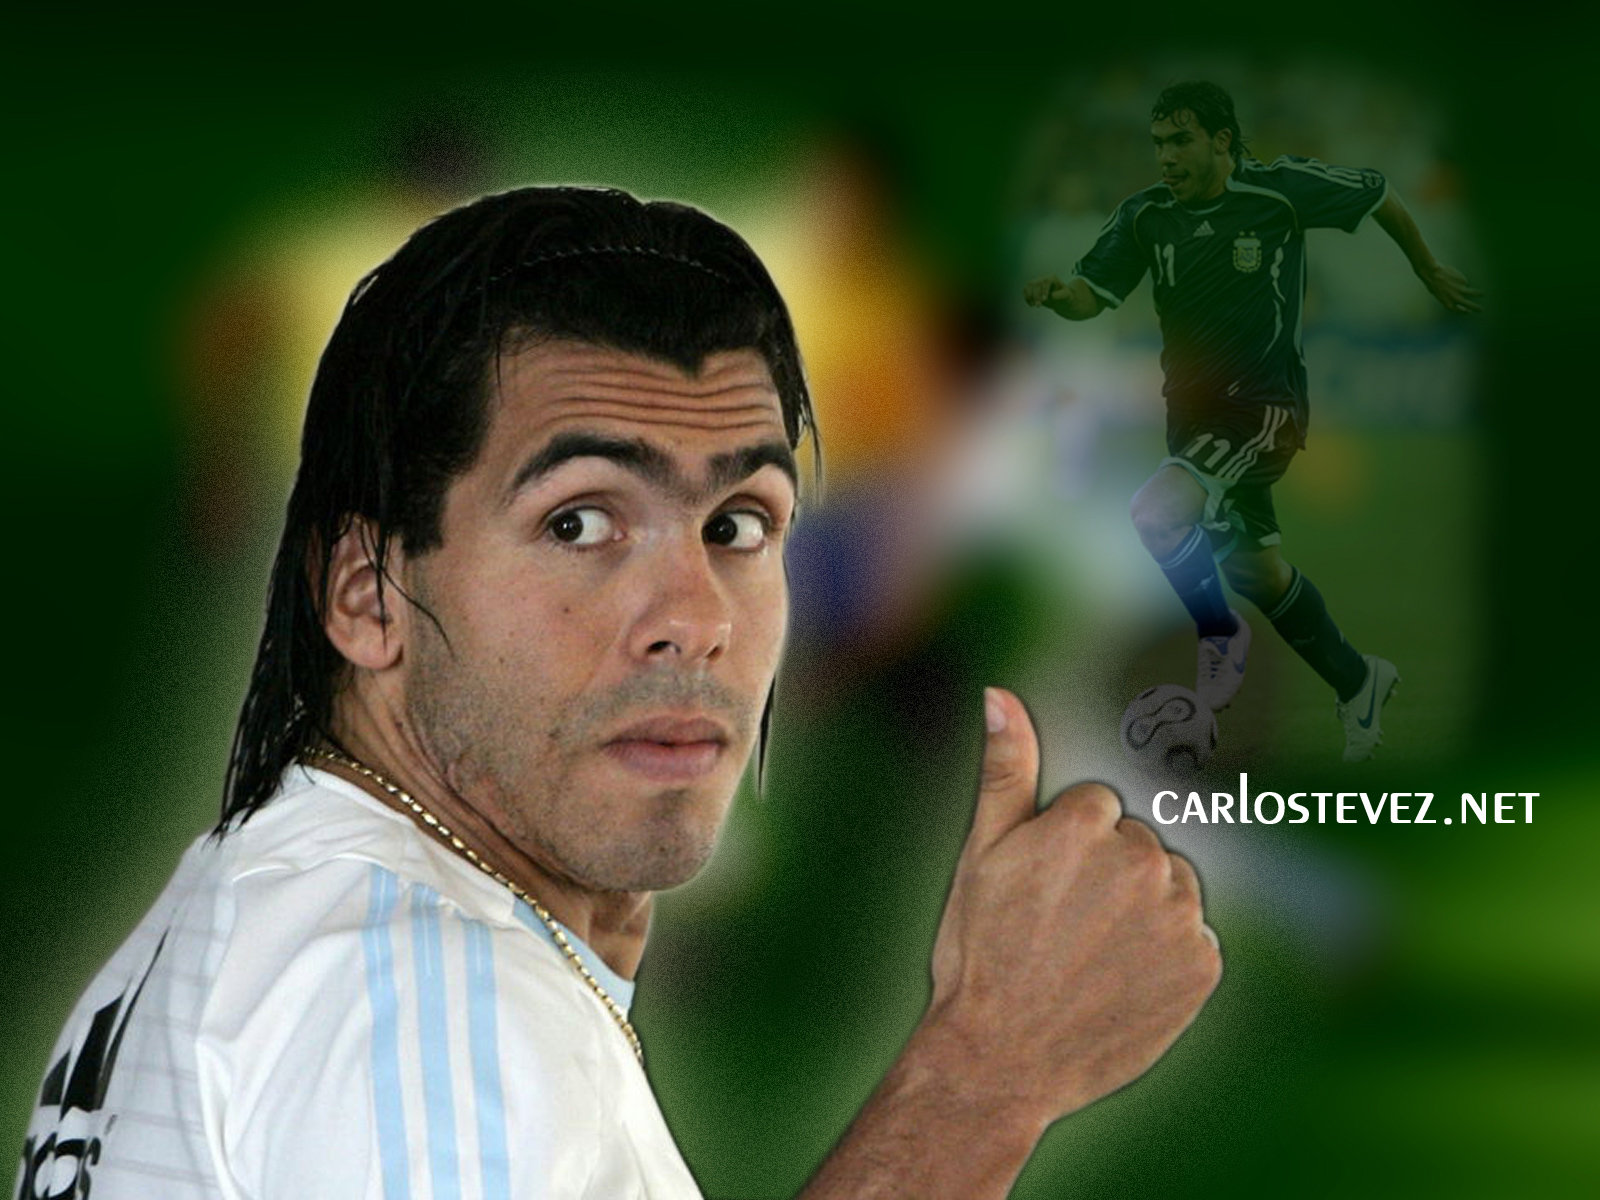 Carlos Tevez Net Worth